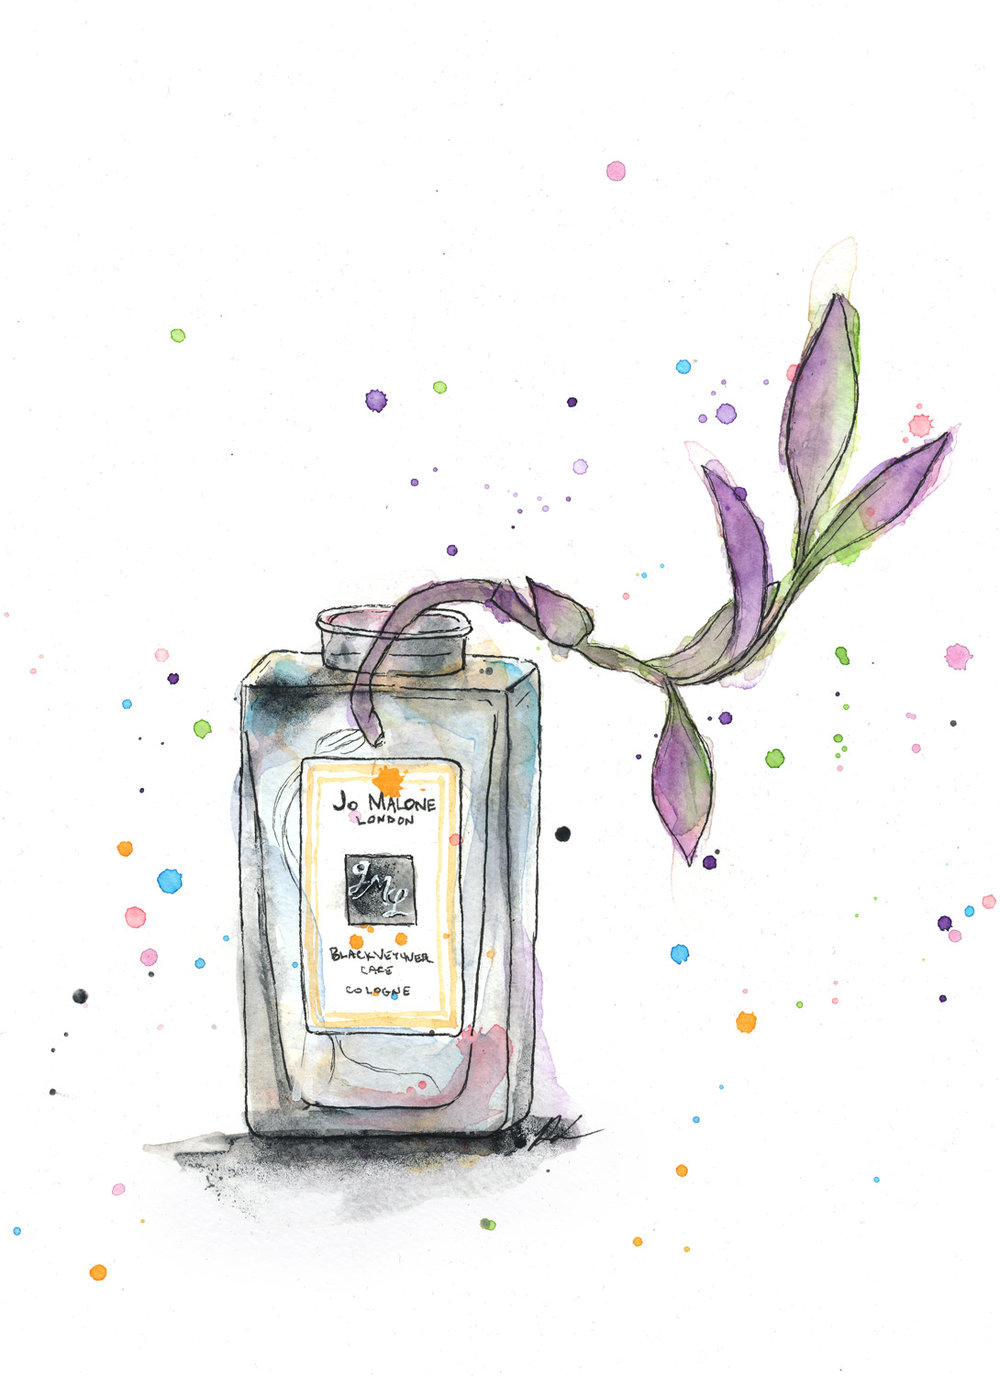 Benjamin-Edward-Jo-Malone-London-Black-Vetiver-Cafe-Cologne-Wandering-Jew-watercolour-illustration.jpg